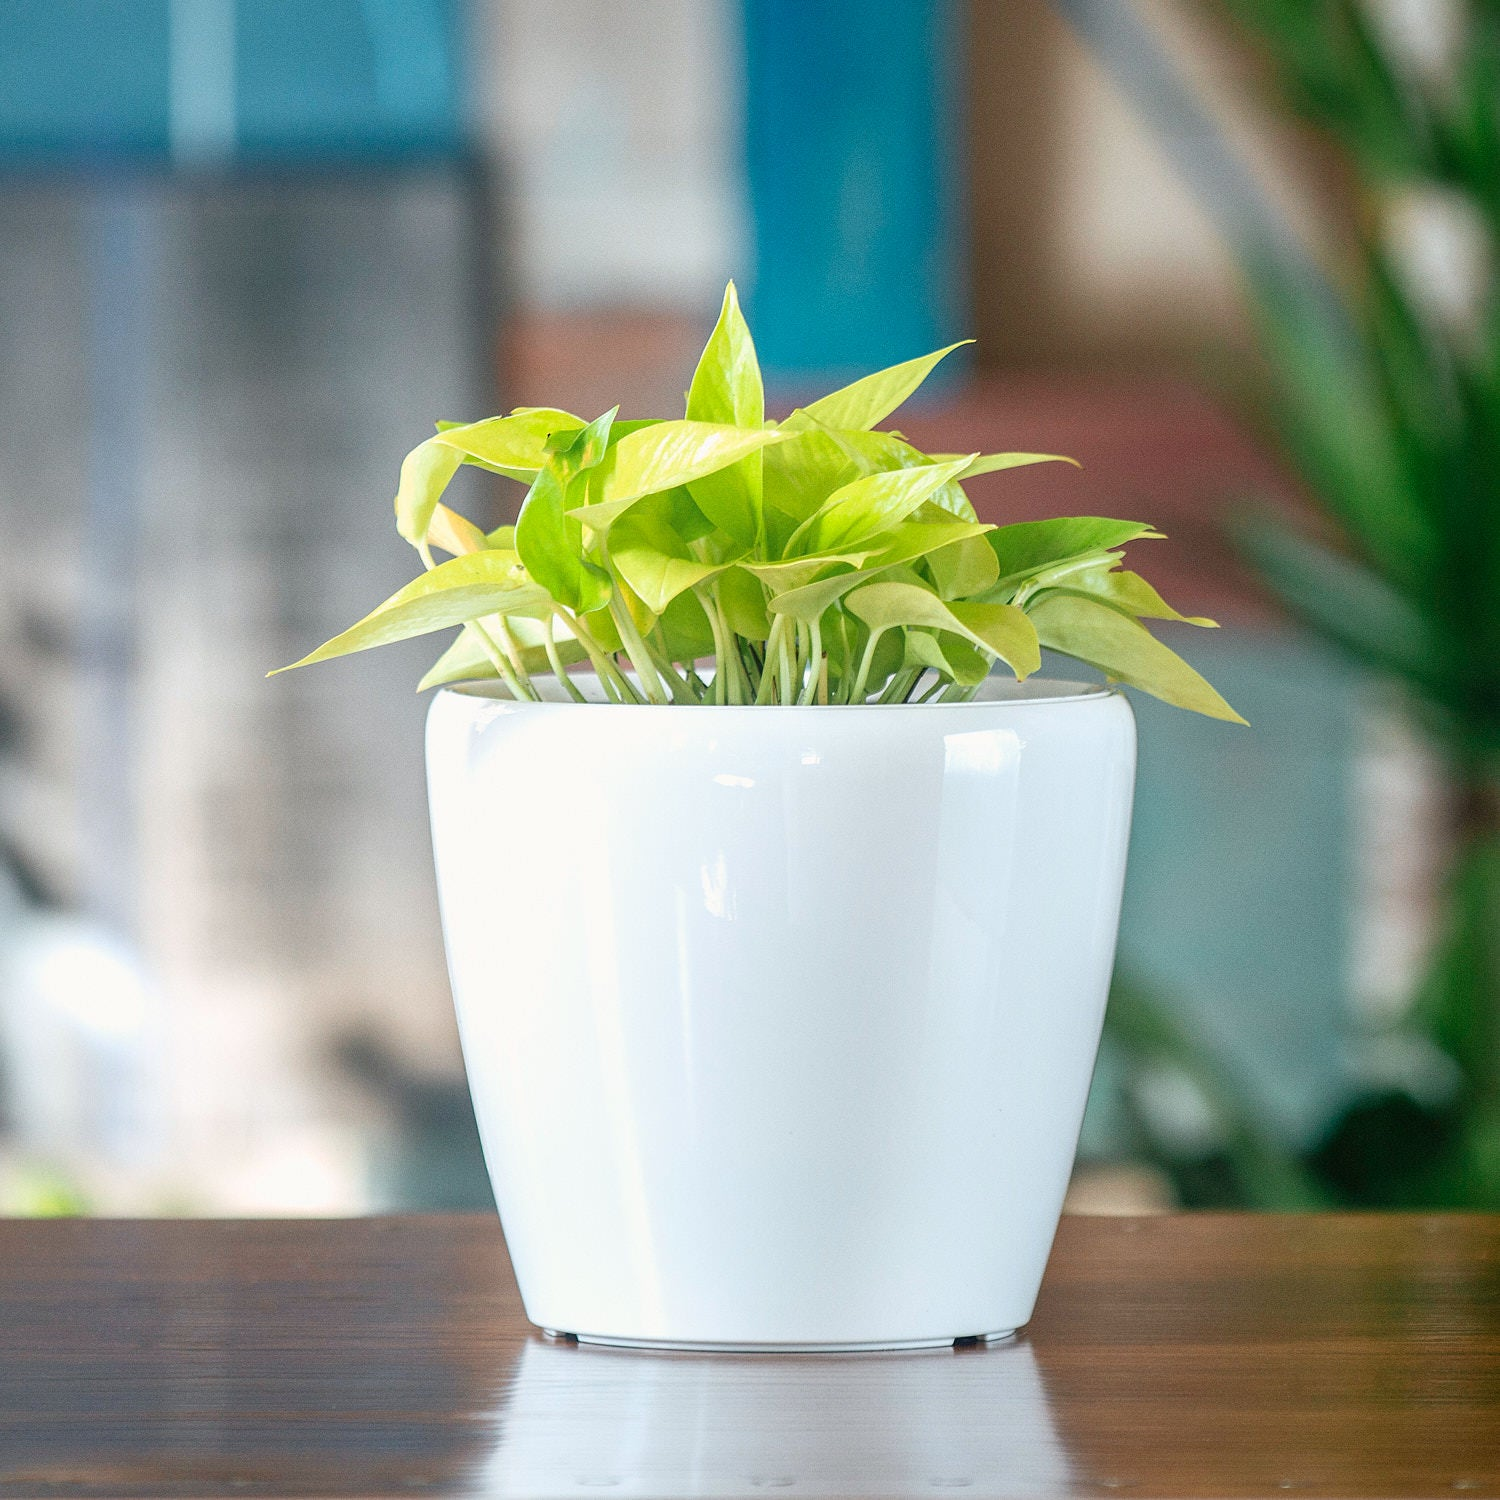 Pothos Neon In Lechuza Classico Mini White Planter | My City Plants